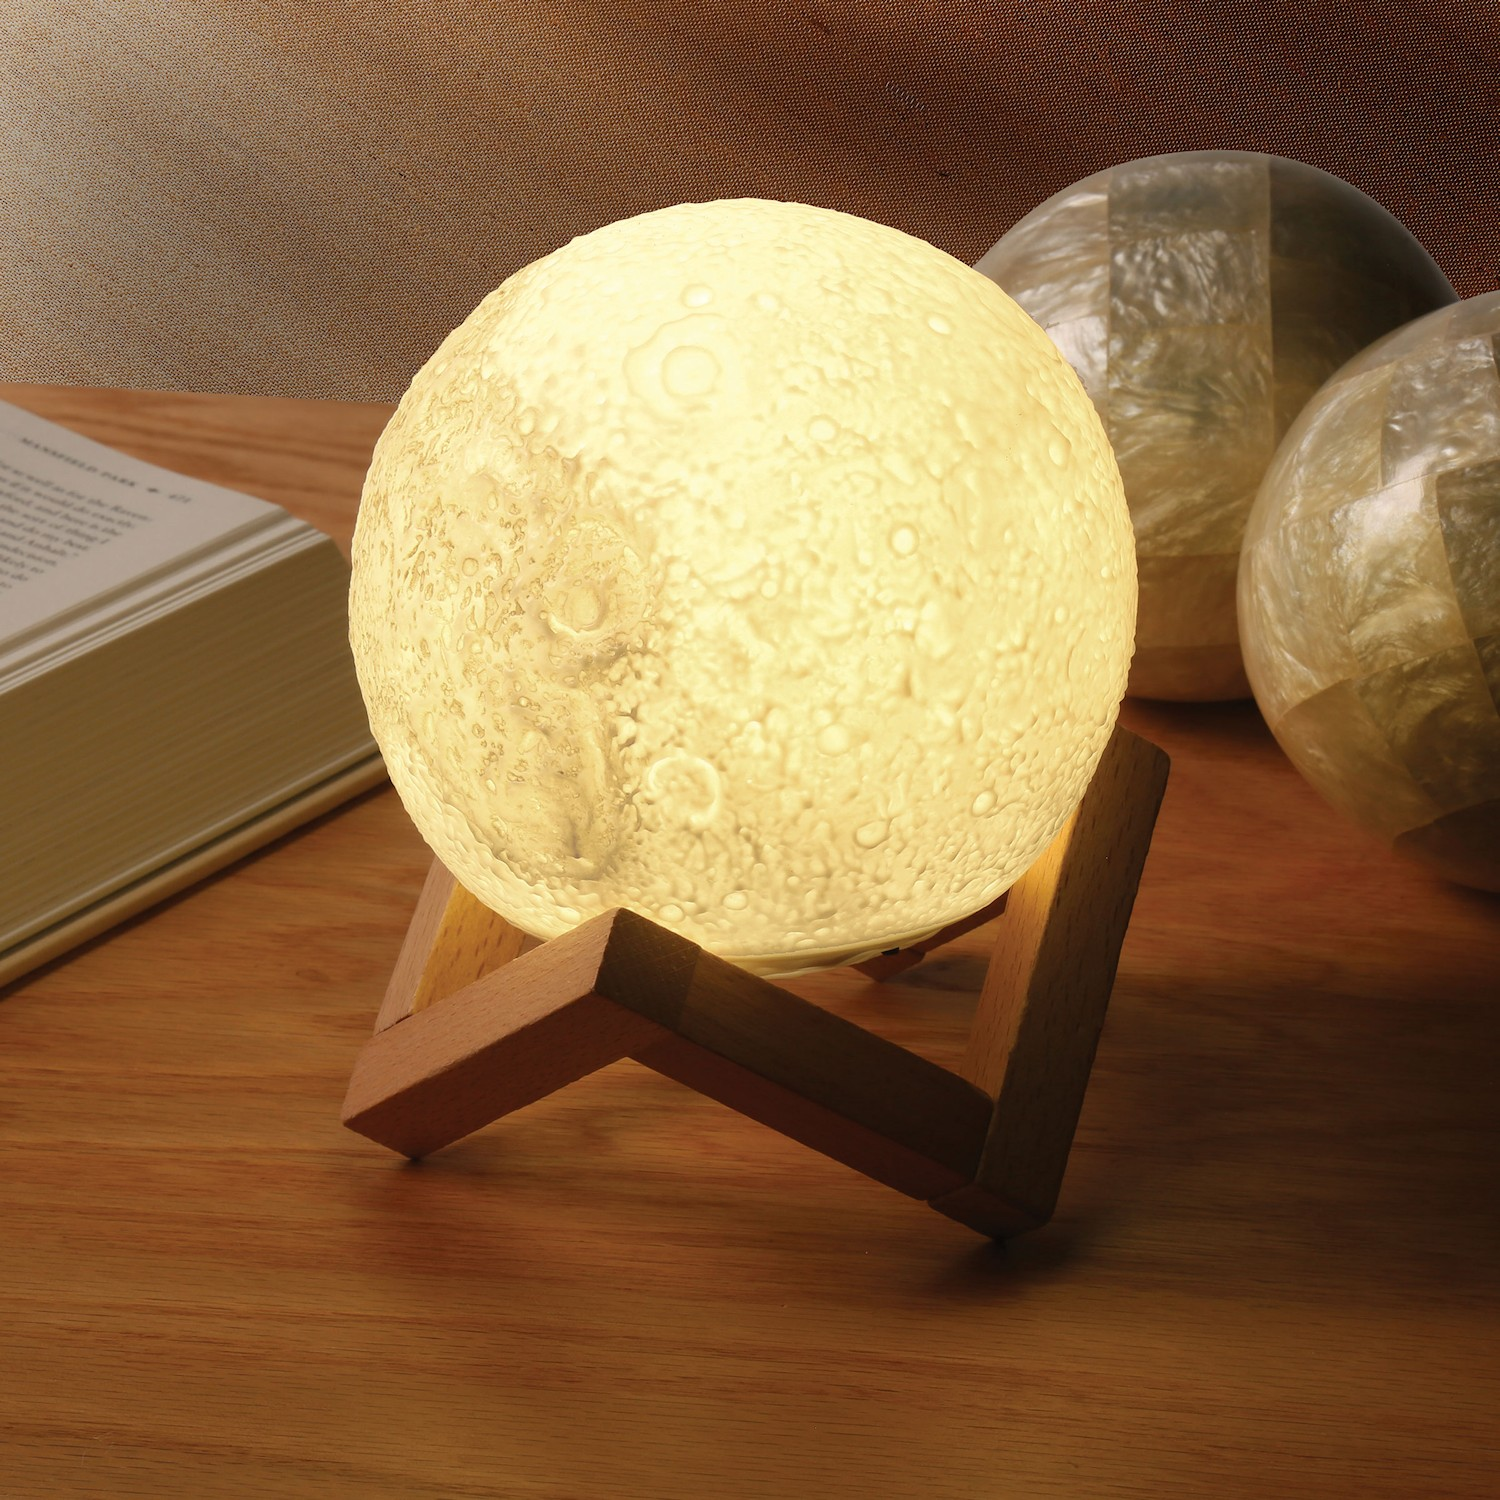 Moon Accent Lamp With Wood Base - Realistic Design Indoor Lighting